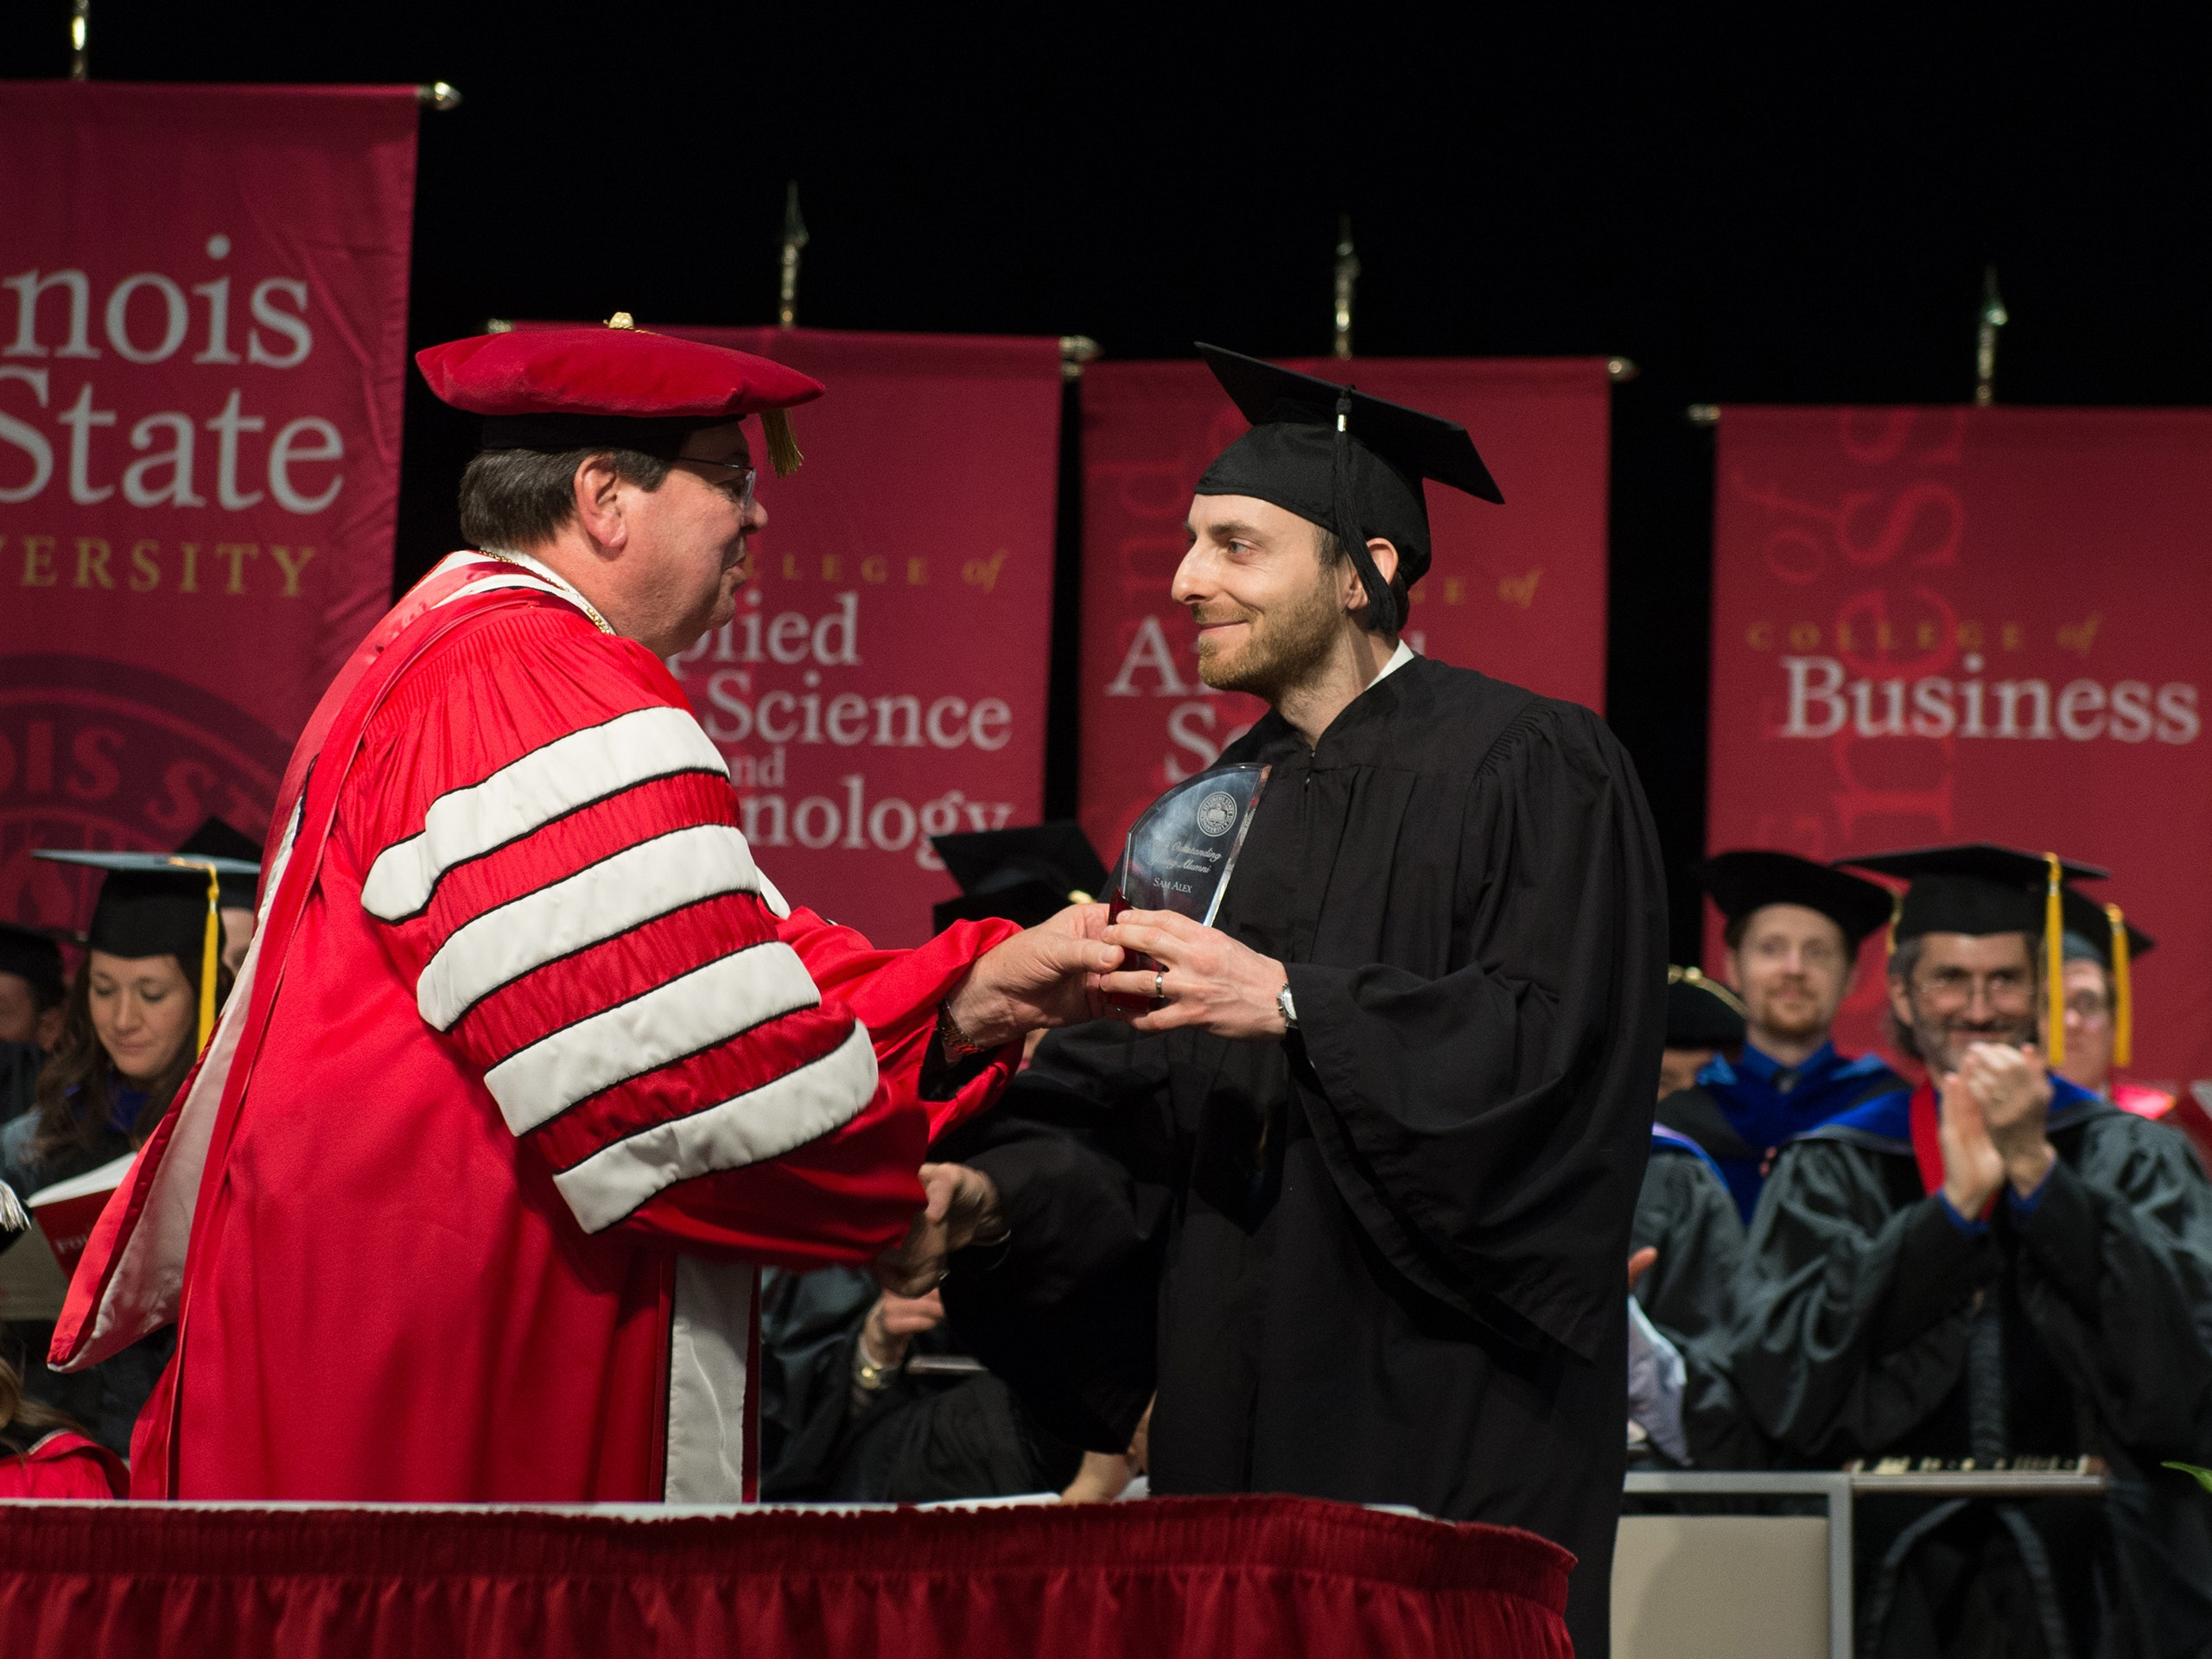 Sam Alex receiving an glass award from Dr. Dietz on a stage with everyone dressed in commencement gowns.